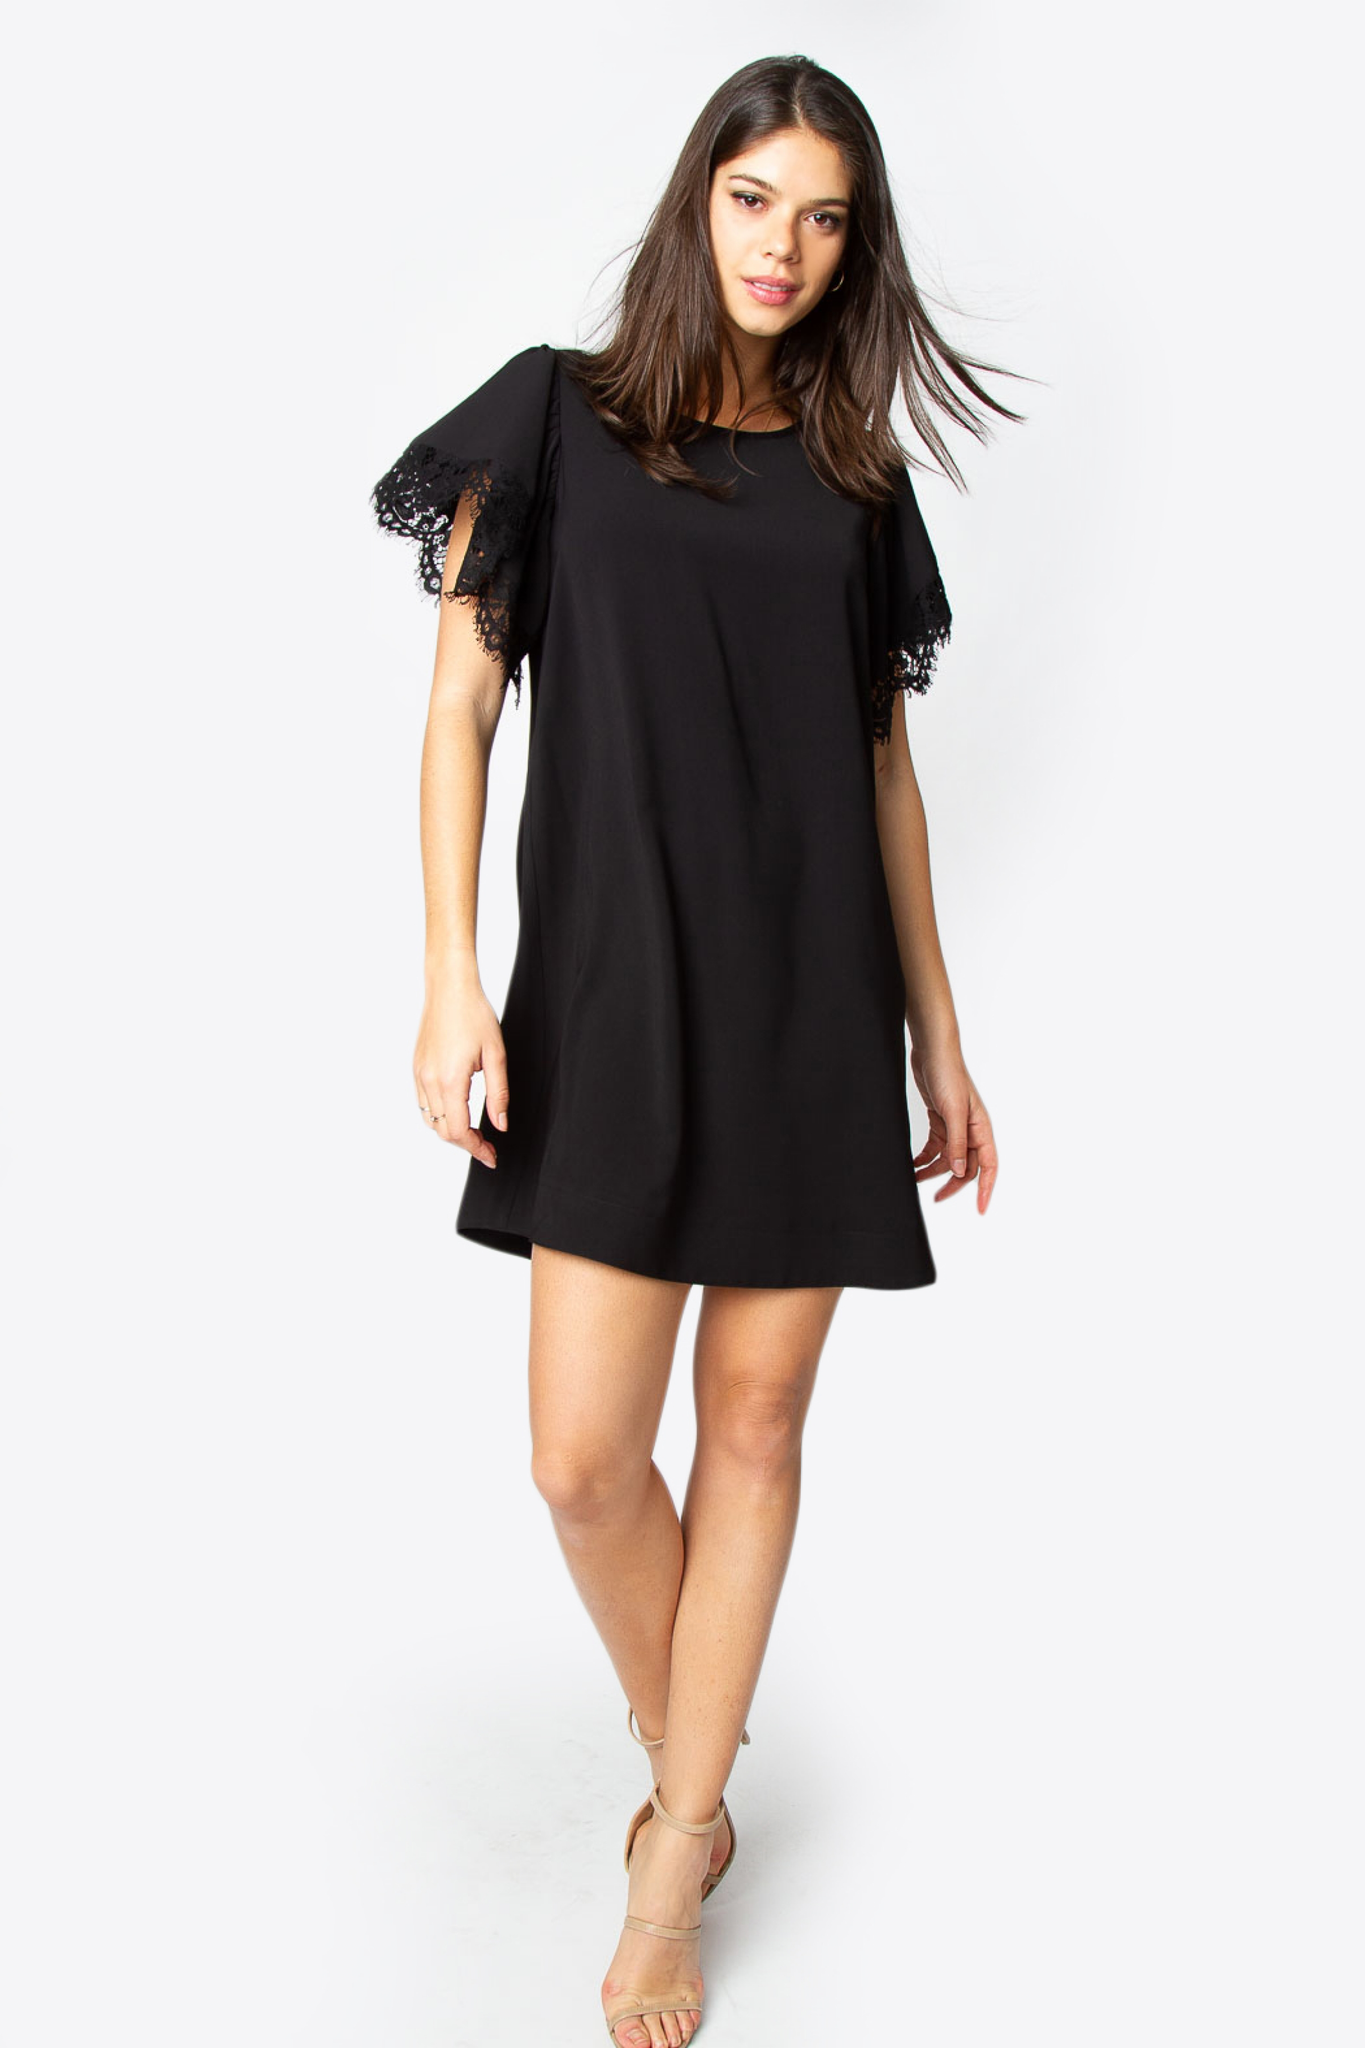 Black lace trim dress